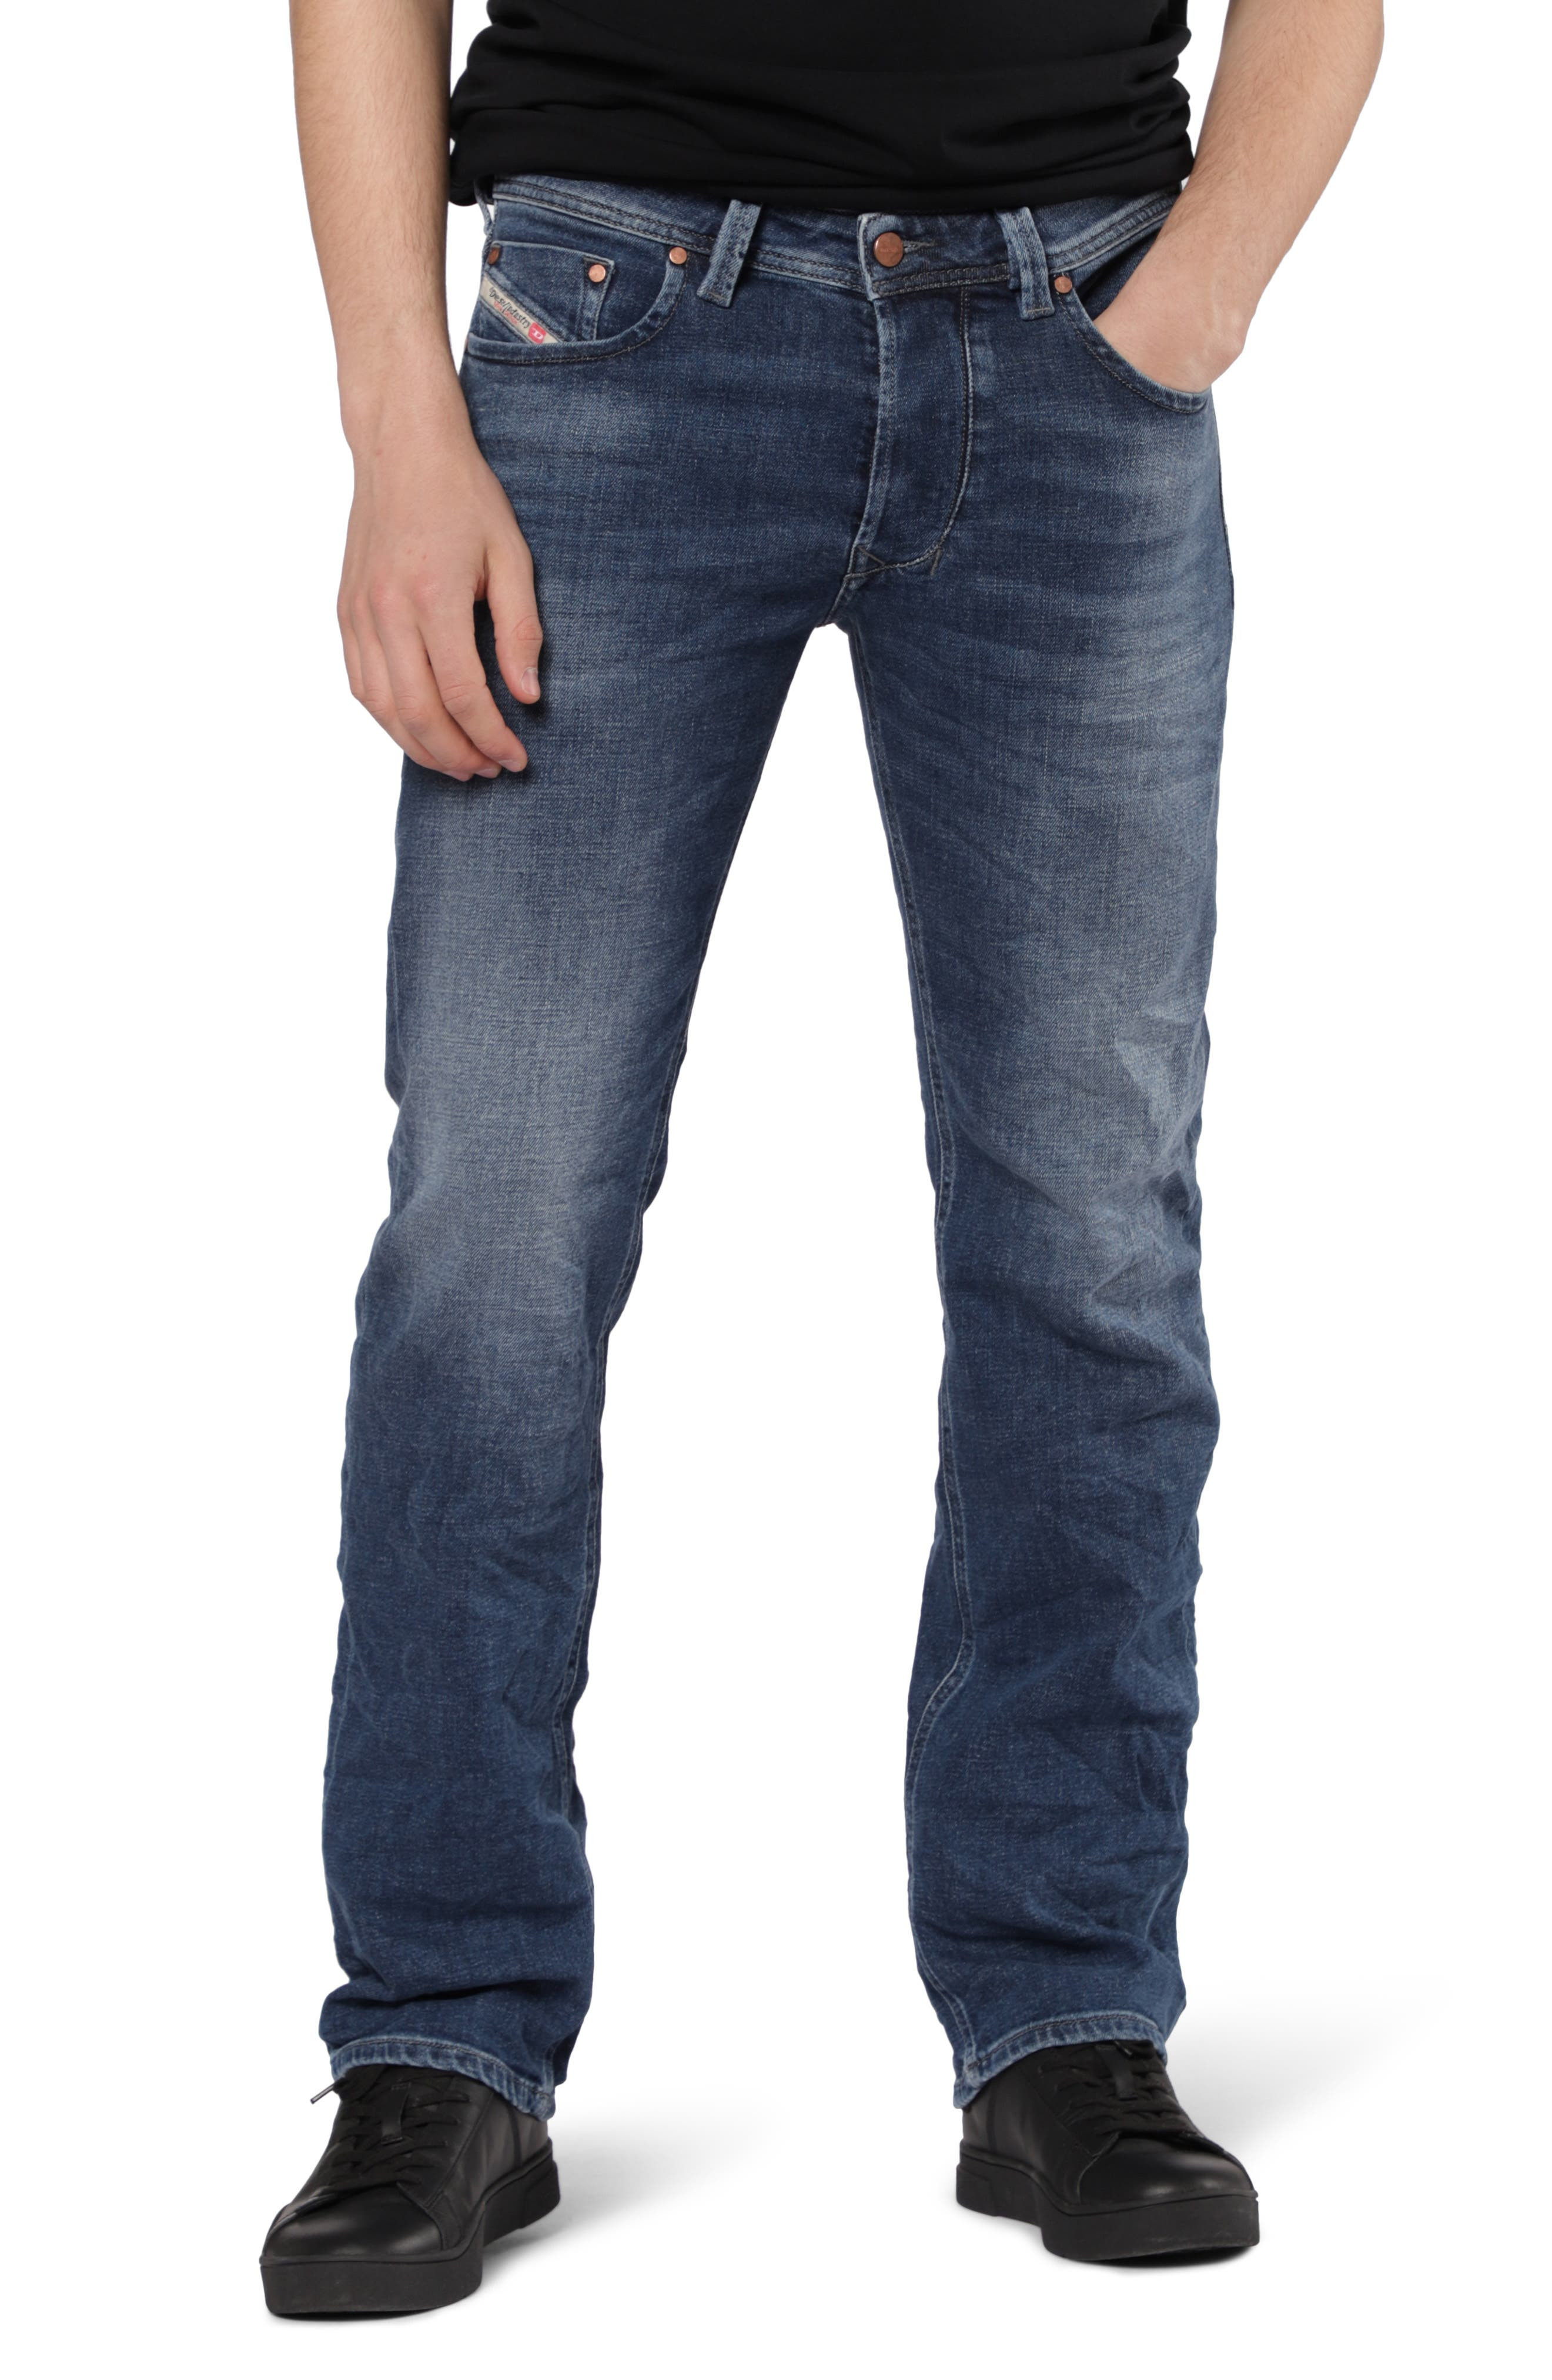 Larkee Relaxed Fit Jeans,                         Main,                         color, 400